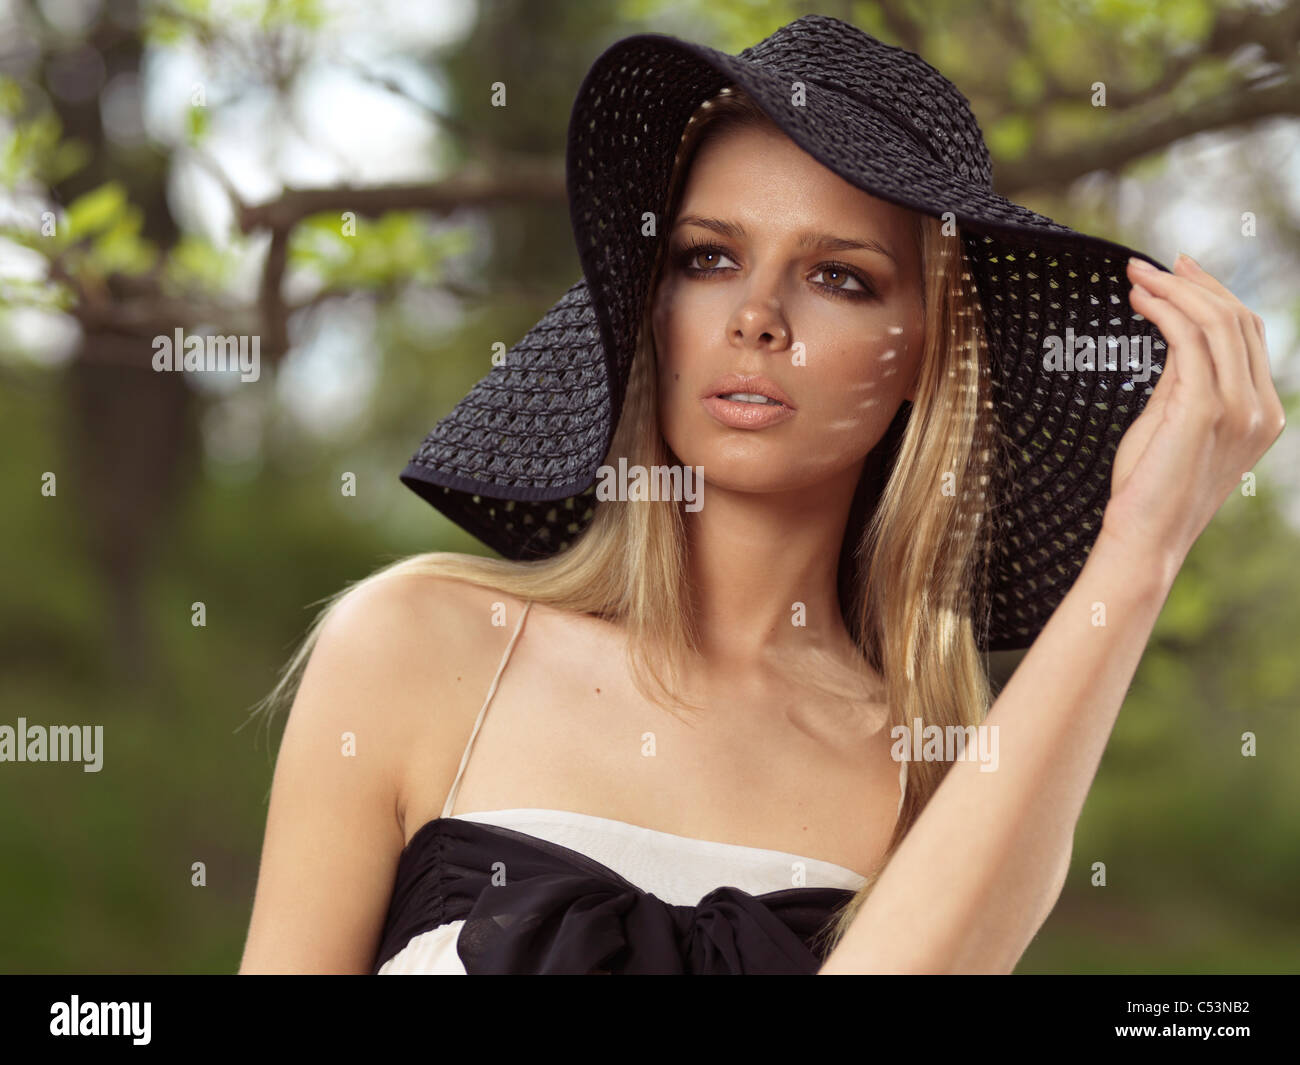 8aae72004ce Portrait of a beautiful young woman wearing a sun hat - Stock Image